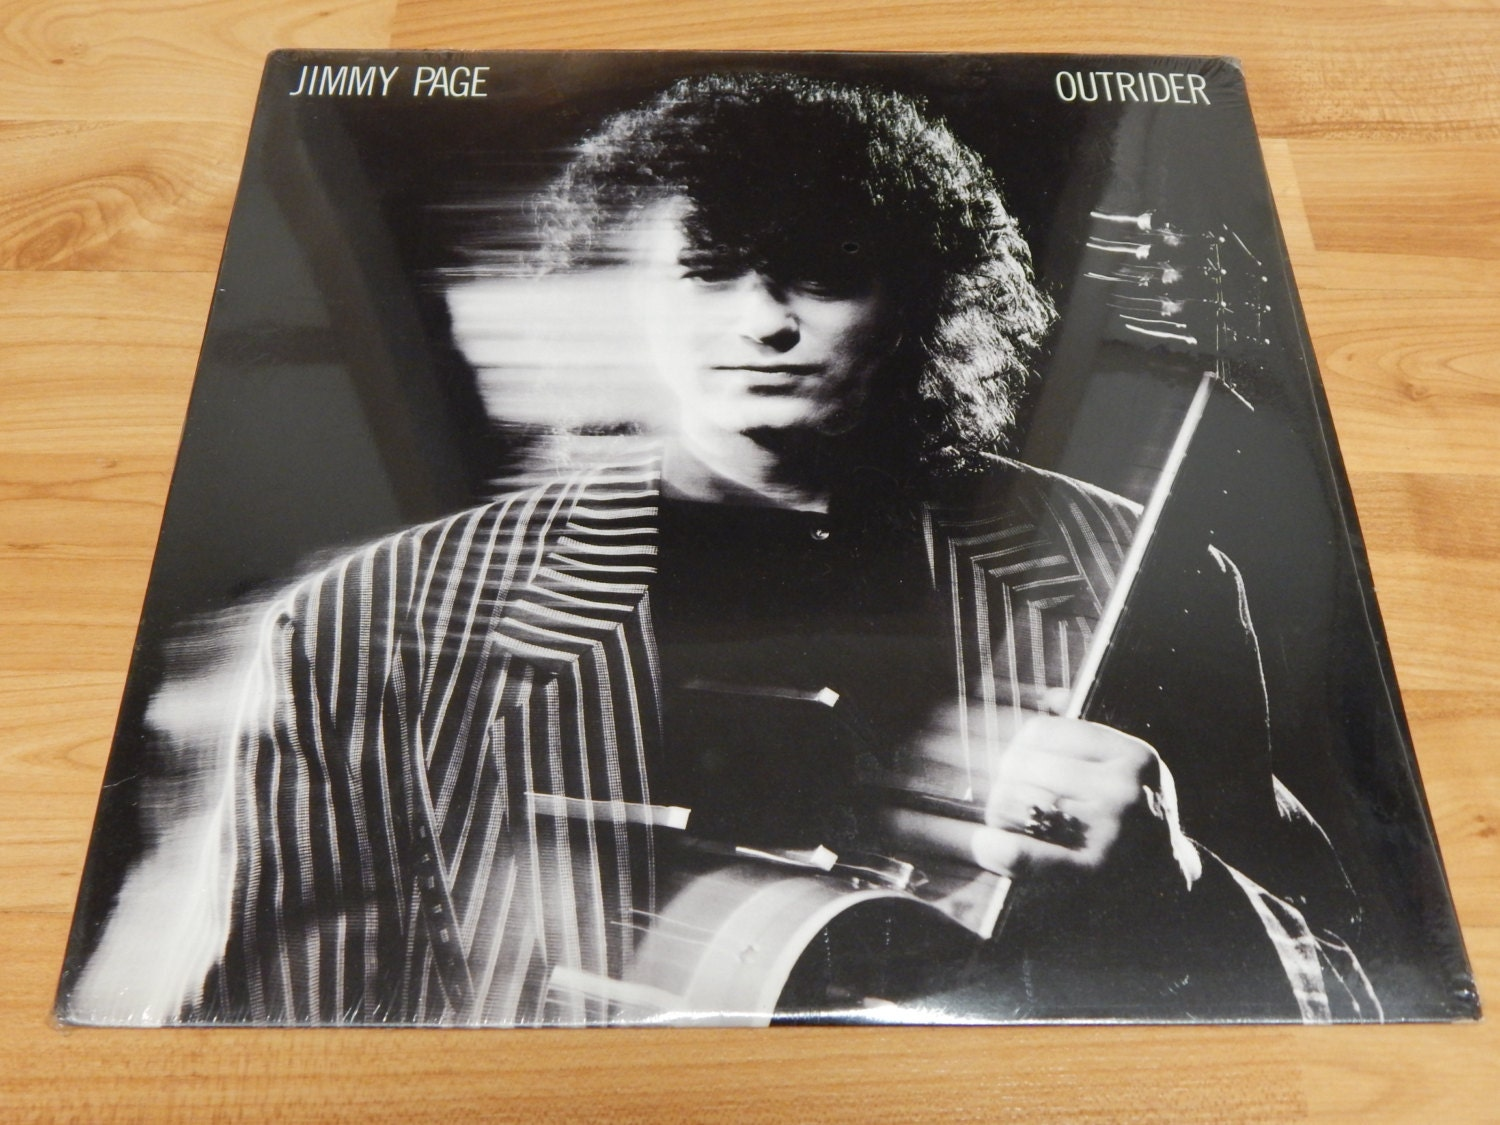 Jimmy Page Outrider Sealed Vinyl Record Lp Album Robert Plant